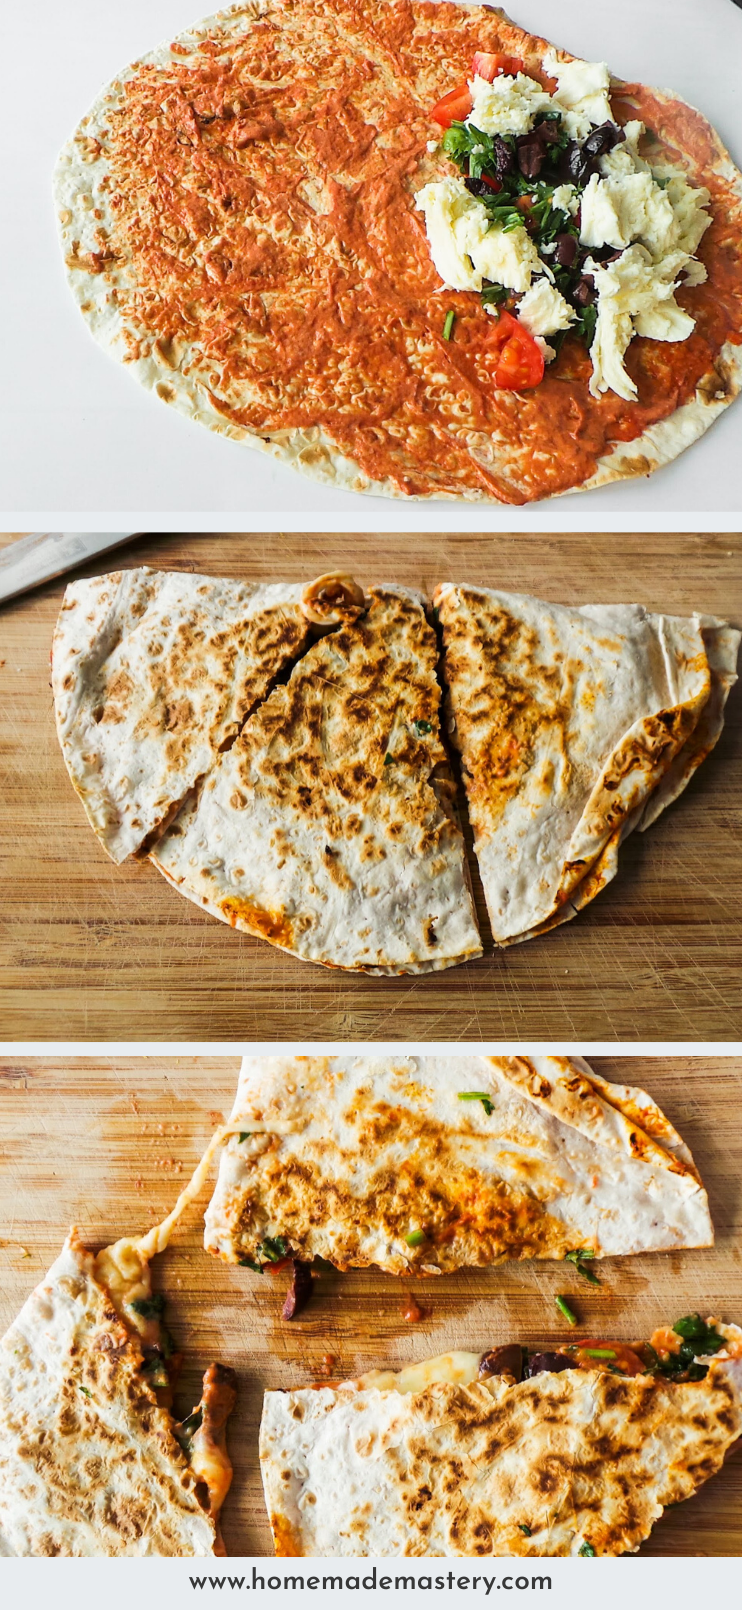 10-minute easy vegetarian quesadilla! This cheesy quesadilla is healthy, super simple, made with easy to find ingredients and tastes a lot like pizza!